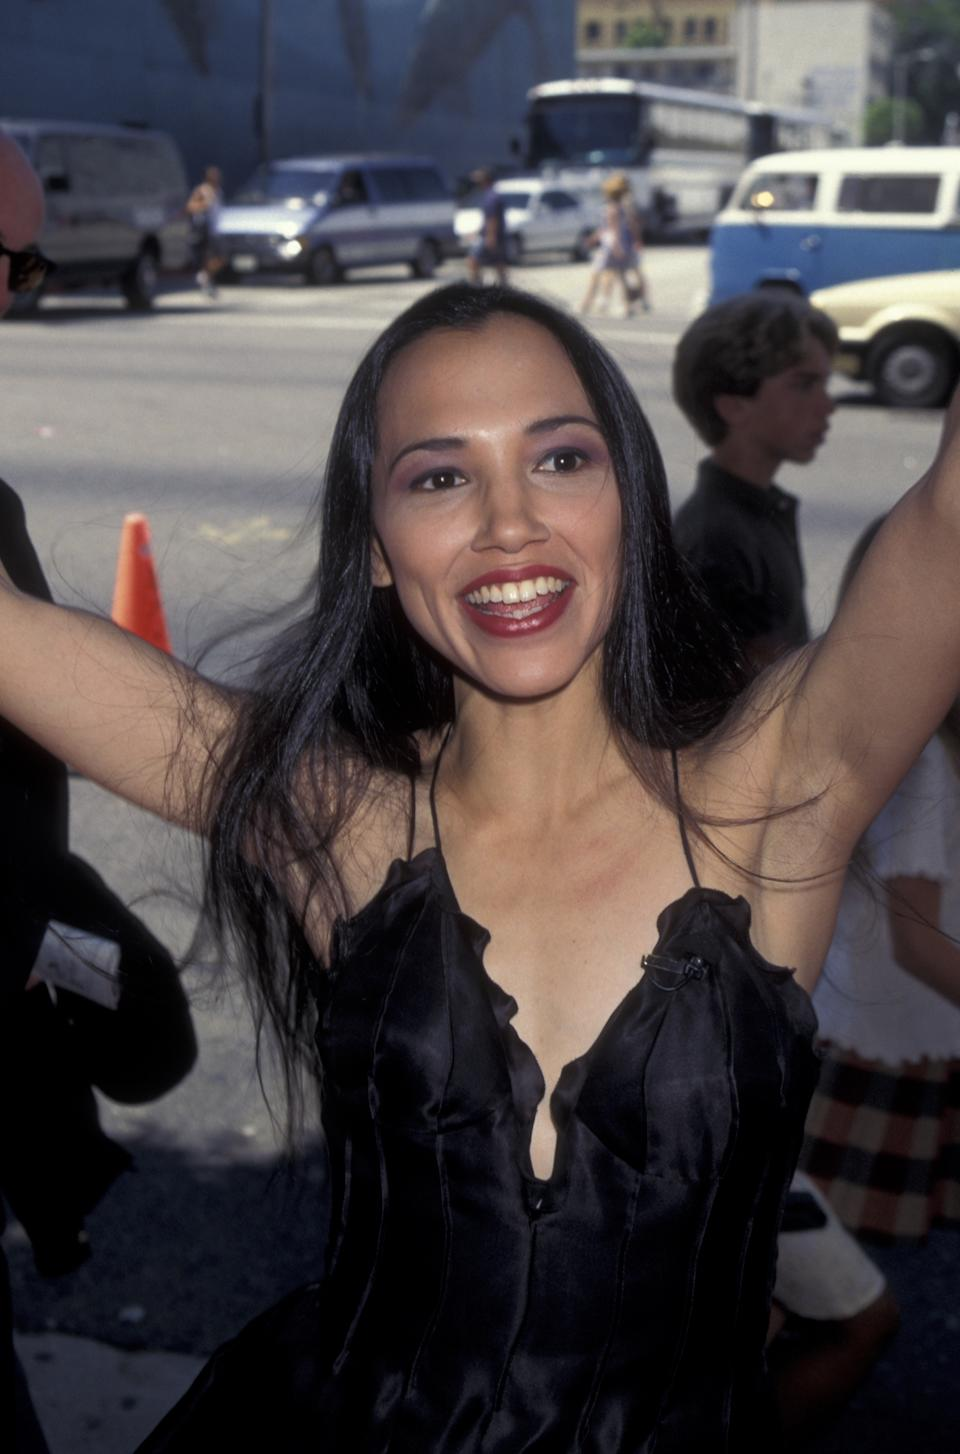 """HOLLYWOOD, CA - JUNE 11:  Irene Bedard attends the premiere of """"Pocahontas"""" on June 11, 1995 at the El Capitan Theater in Hollywood, California. (Photo by Ron Galella, Ltd./Ron Galella Collection via Getty Images)"""